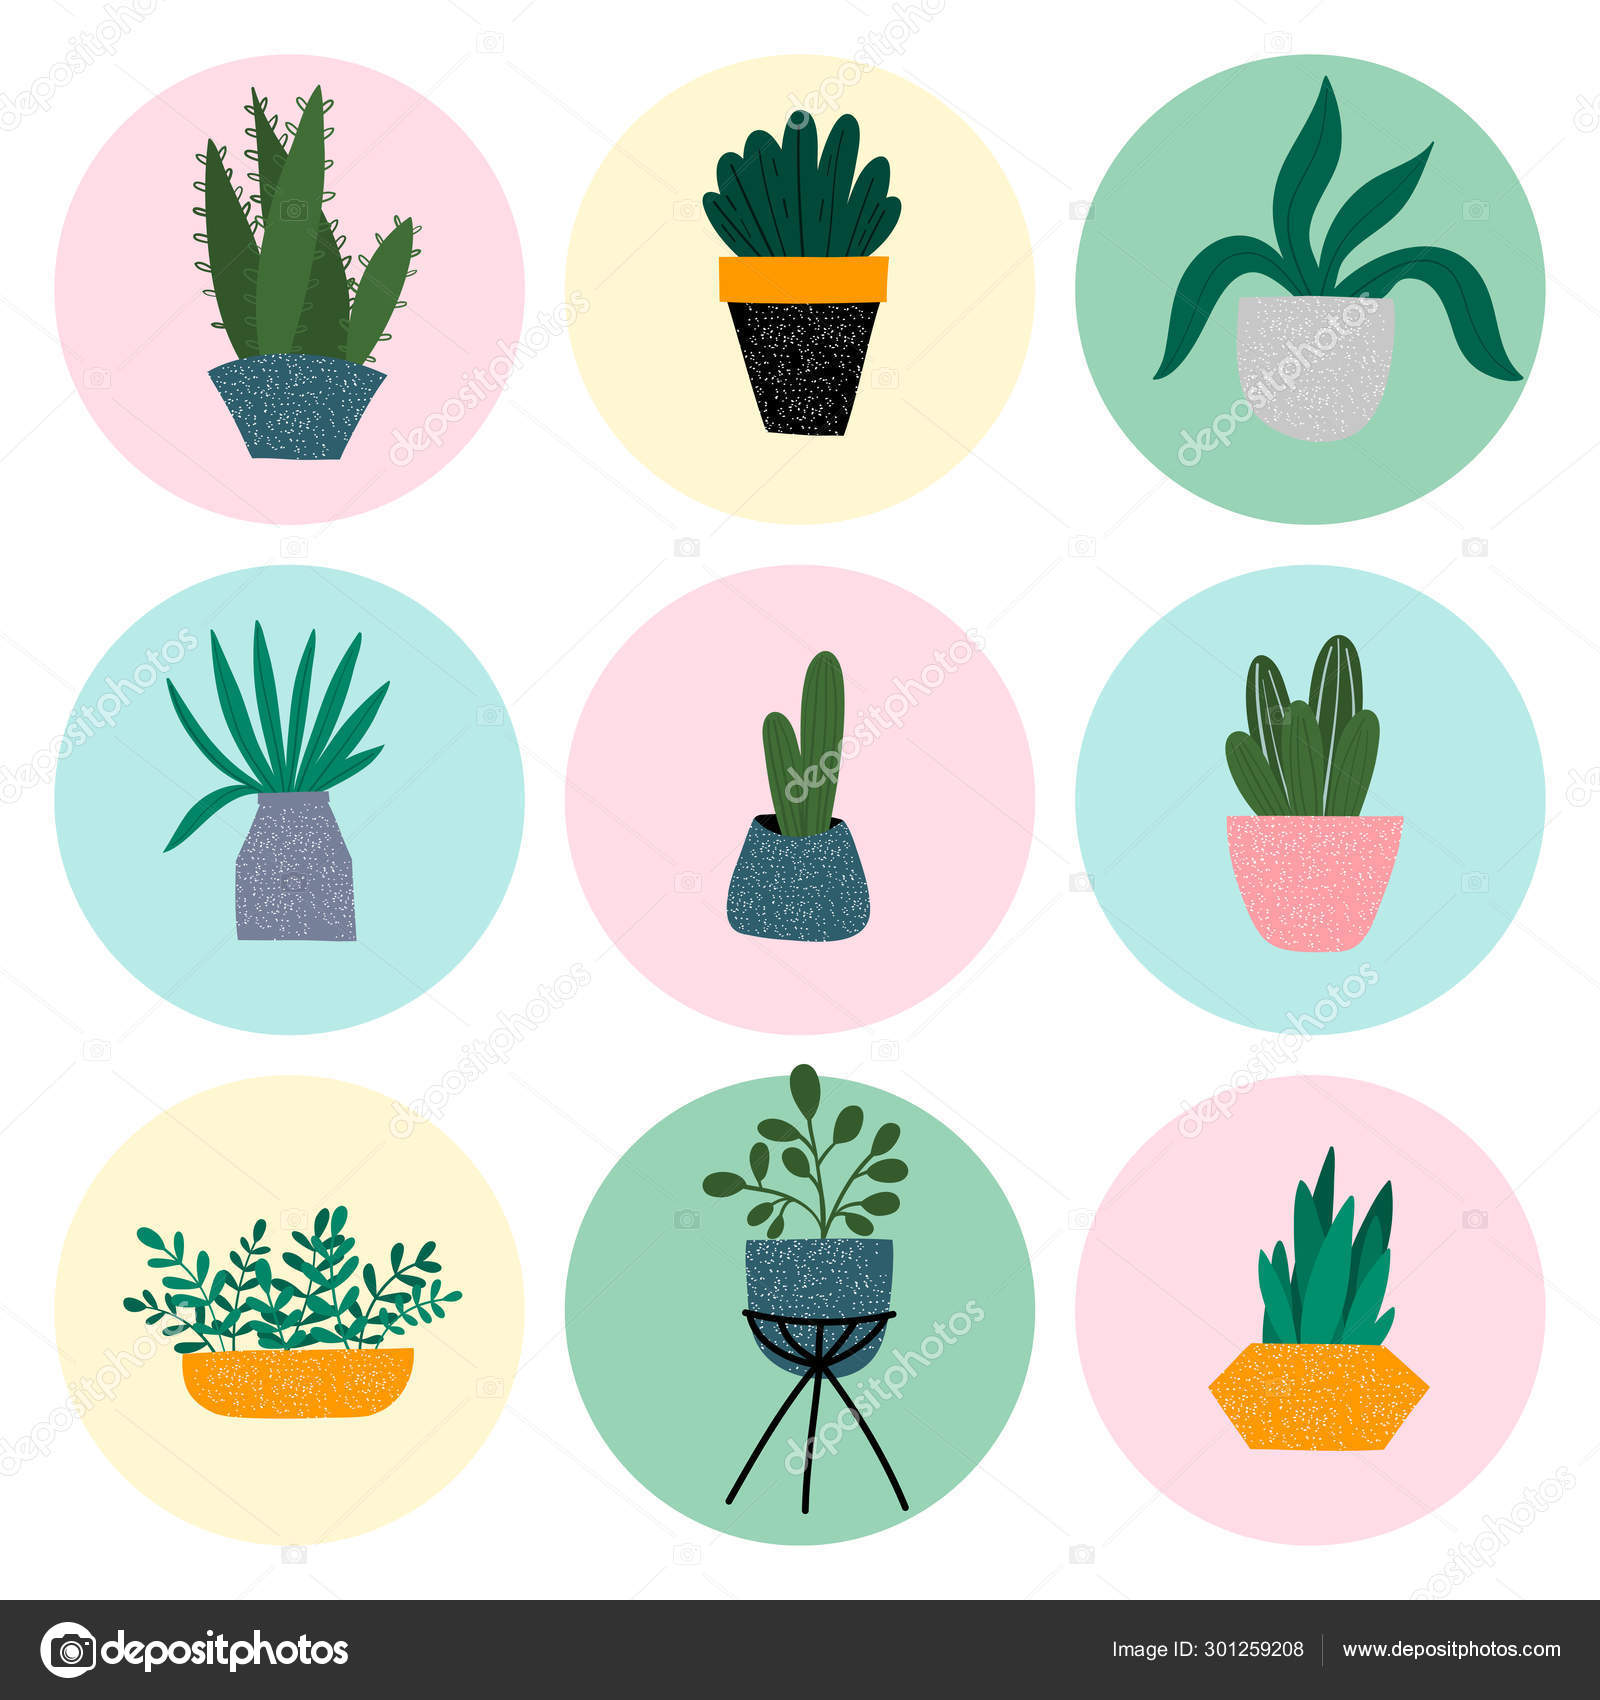 House Plants Colourful Hand Drawn Illustration Set Of Icons Cute Pots Cactuses And Succulents Isolated Cartoon Item In Scandinavian Style Vector Image By C Melanierom Vector Stock 301259208